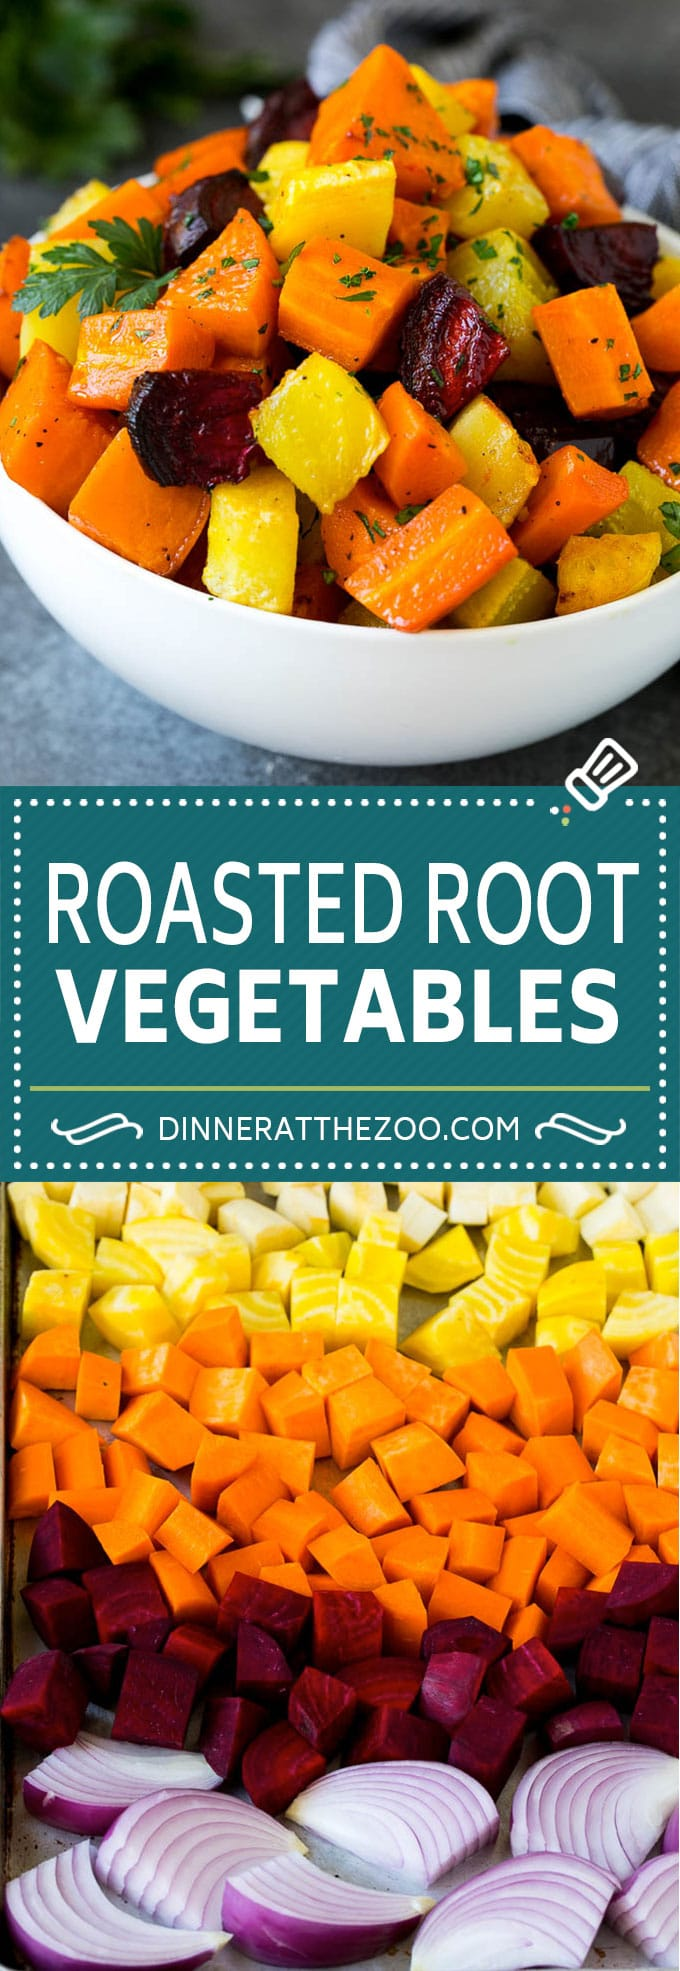 Roasted Root Vegetables Recipe | Roasted Sweet Potatoes | Roasted Beets | Roasted Carrots #carrots #beets #vegetables #sweetpotatoes #fall #parsnips #sidedish #dinneratthezoo #cleaneating #healthy